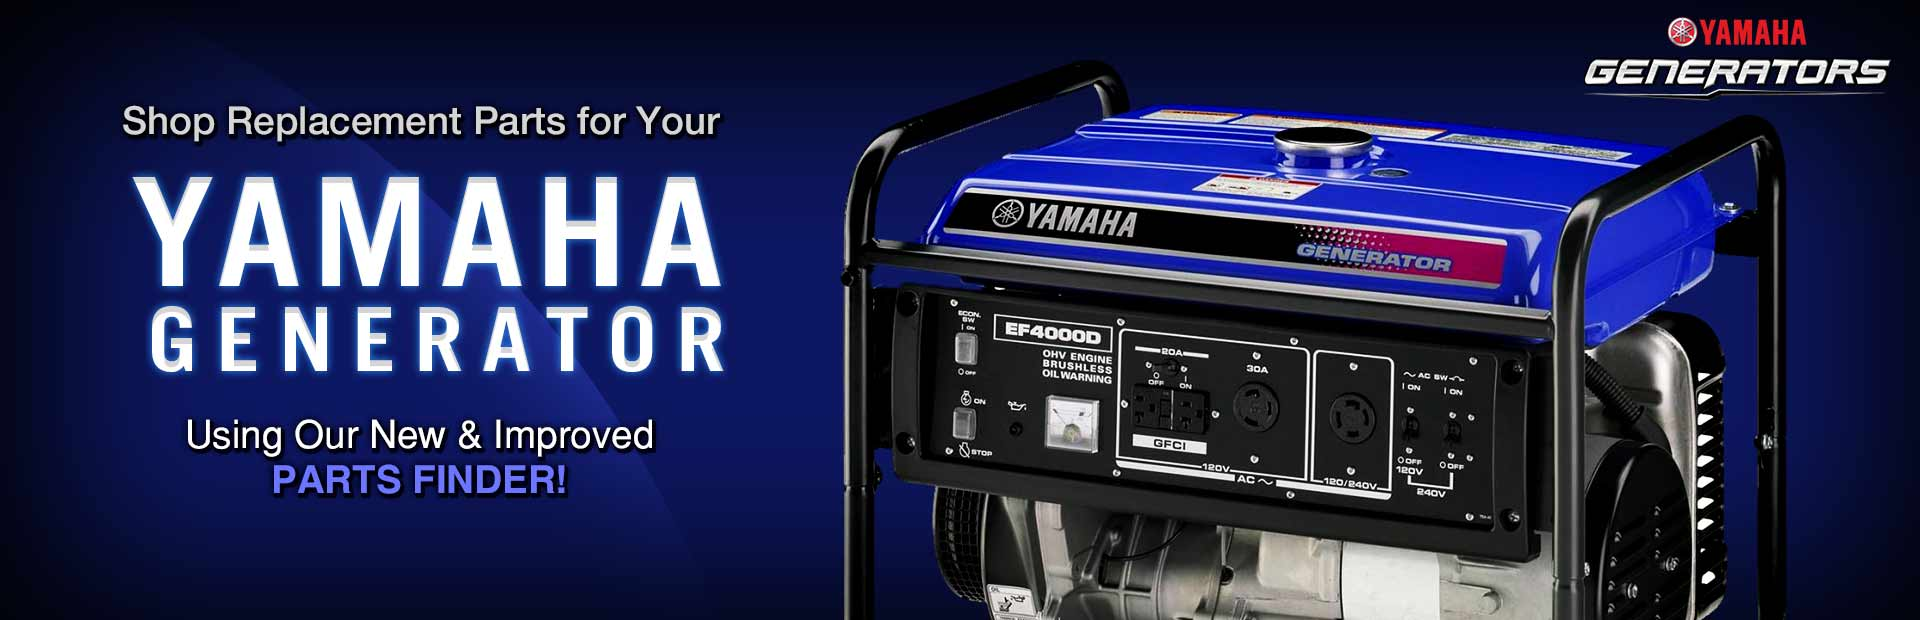 Shop replacement parts for your Yamaha generator using our new and improved Parts Finder!